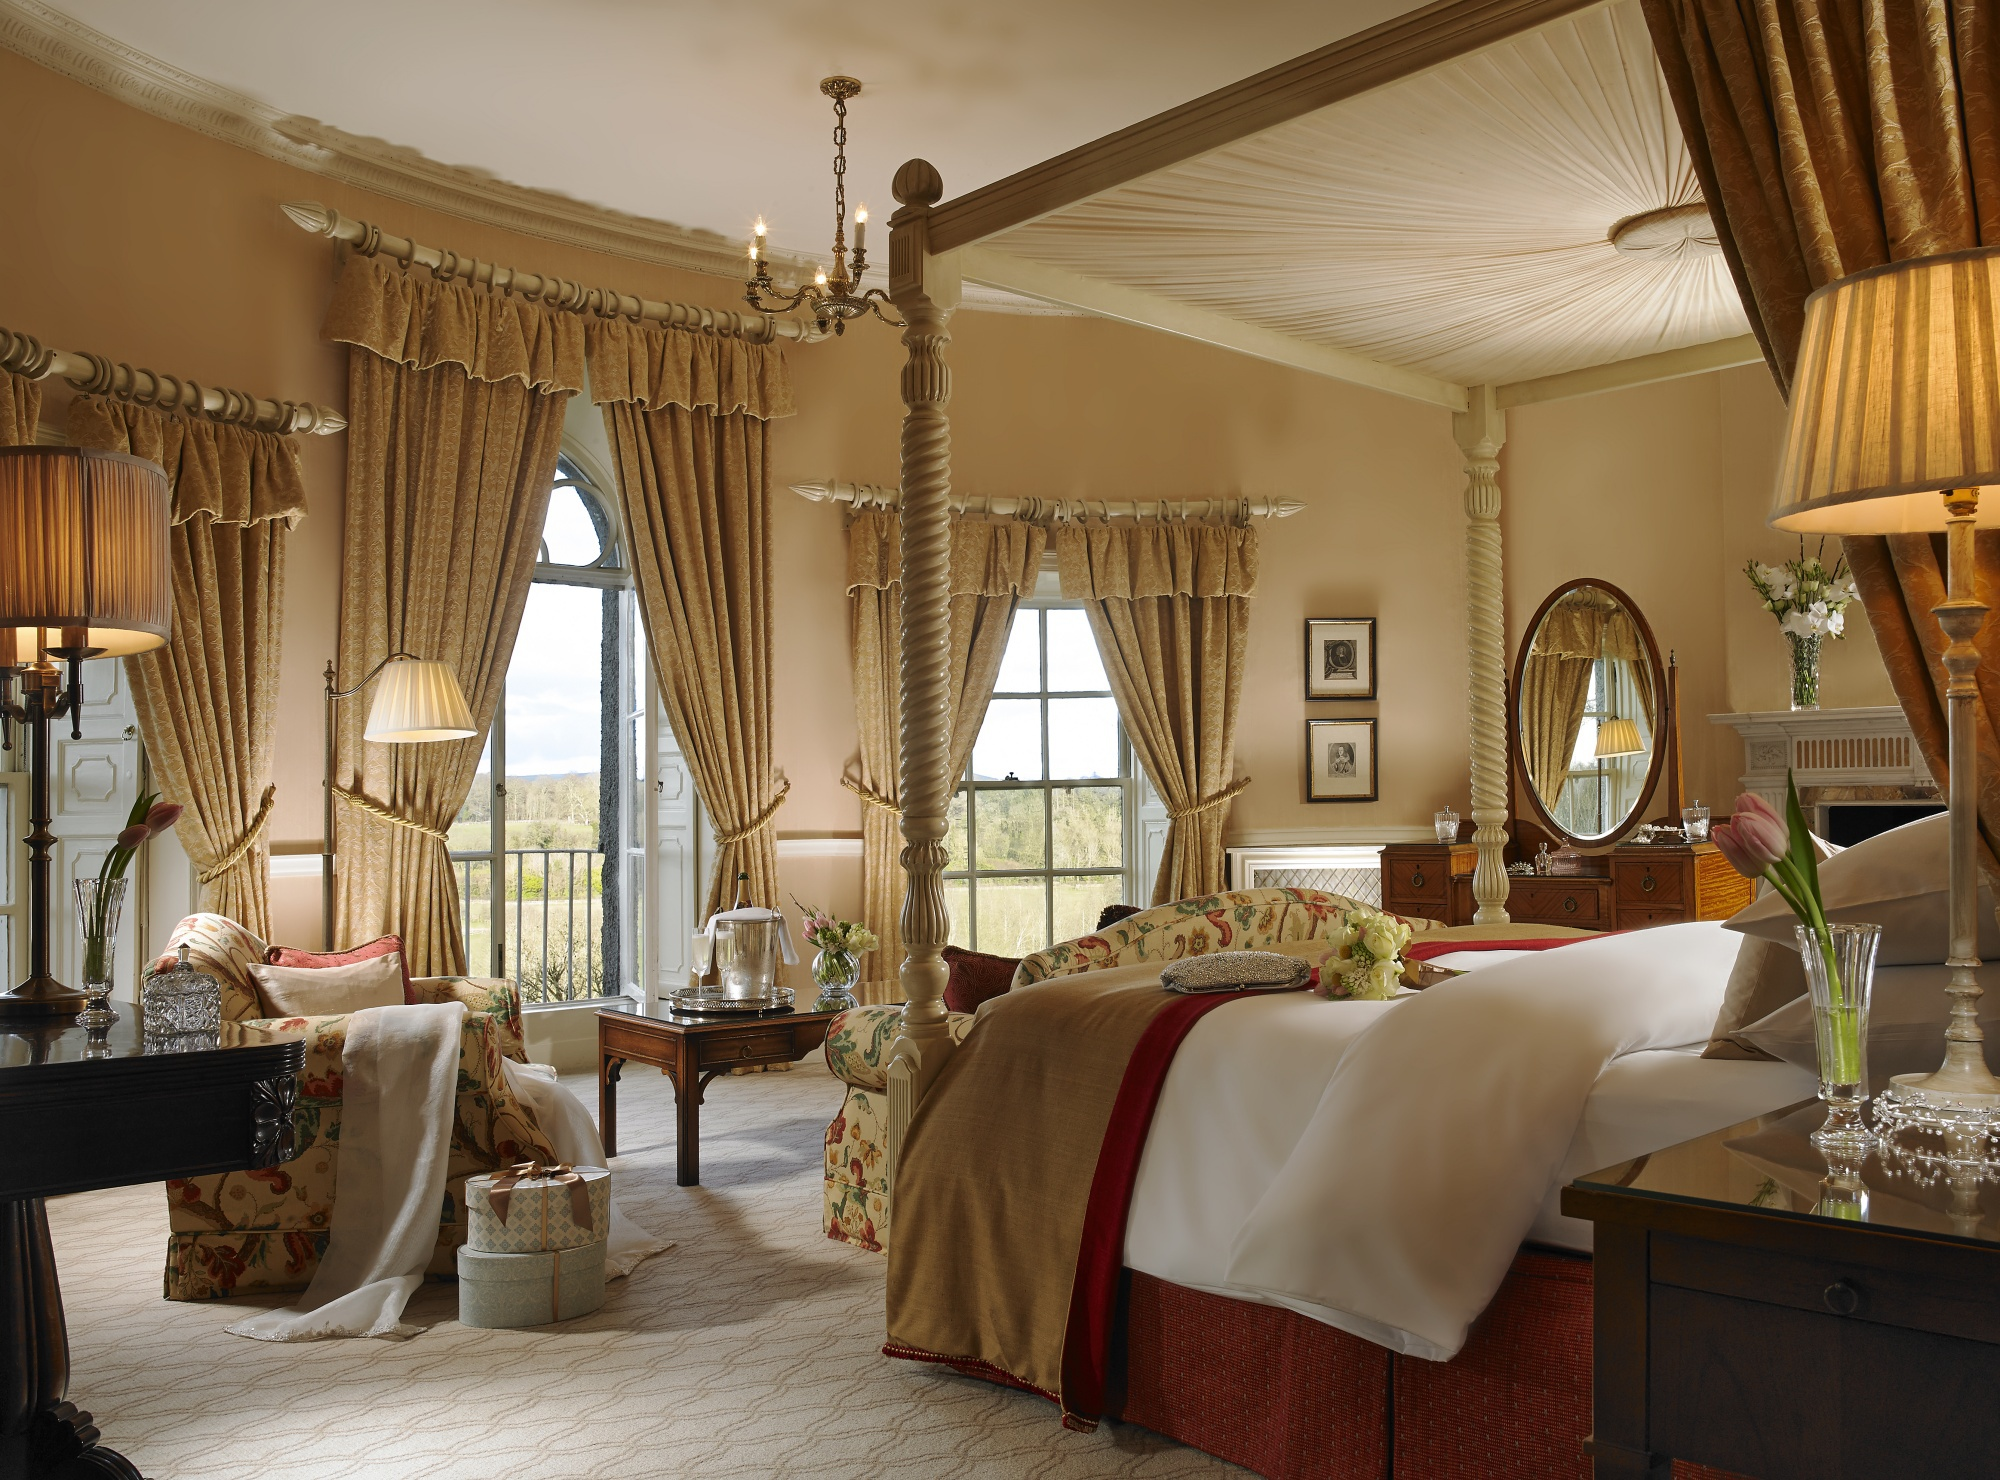 Manor Houe Presidential Suite Room 17